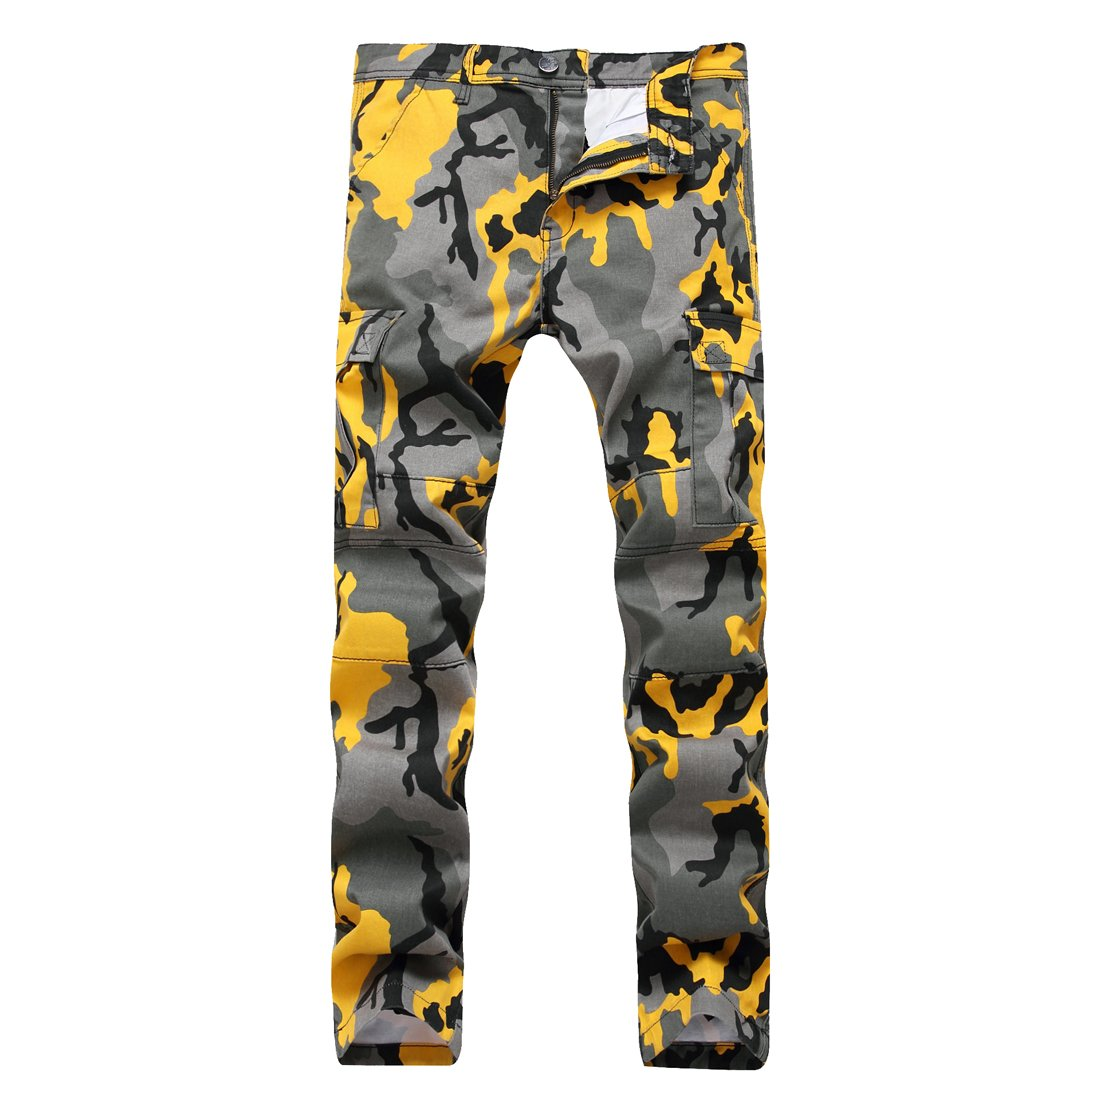 SHOWNO-Men Zipper Casual Pockets Camouflage Mid Waist Jogging Washed Cargo Pants